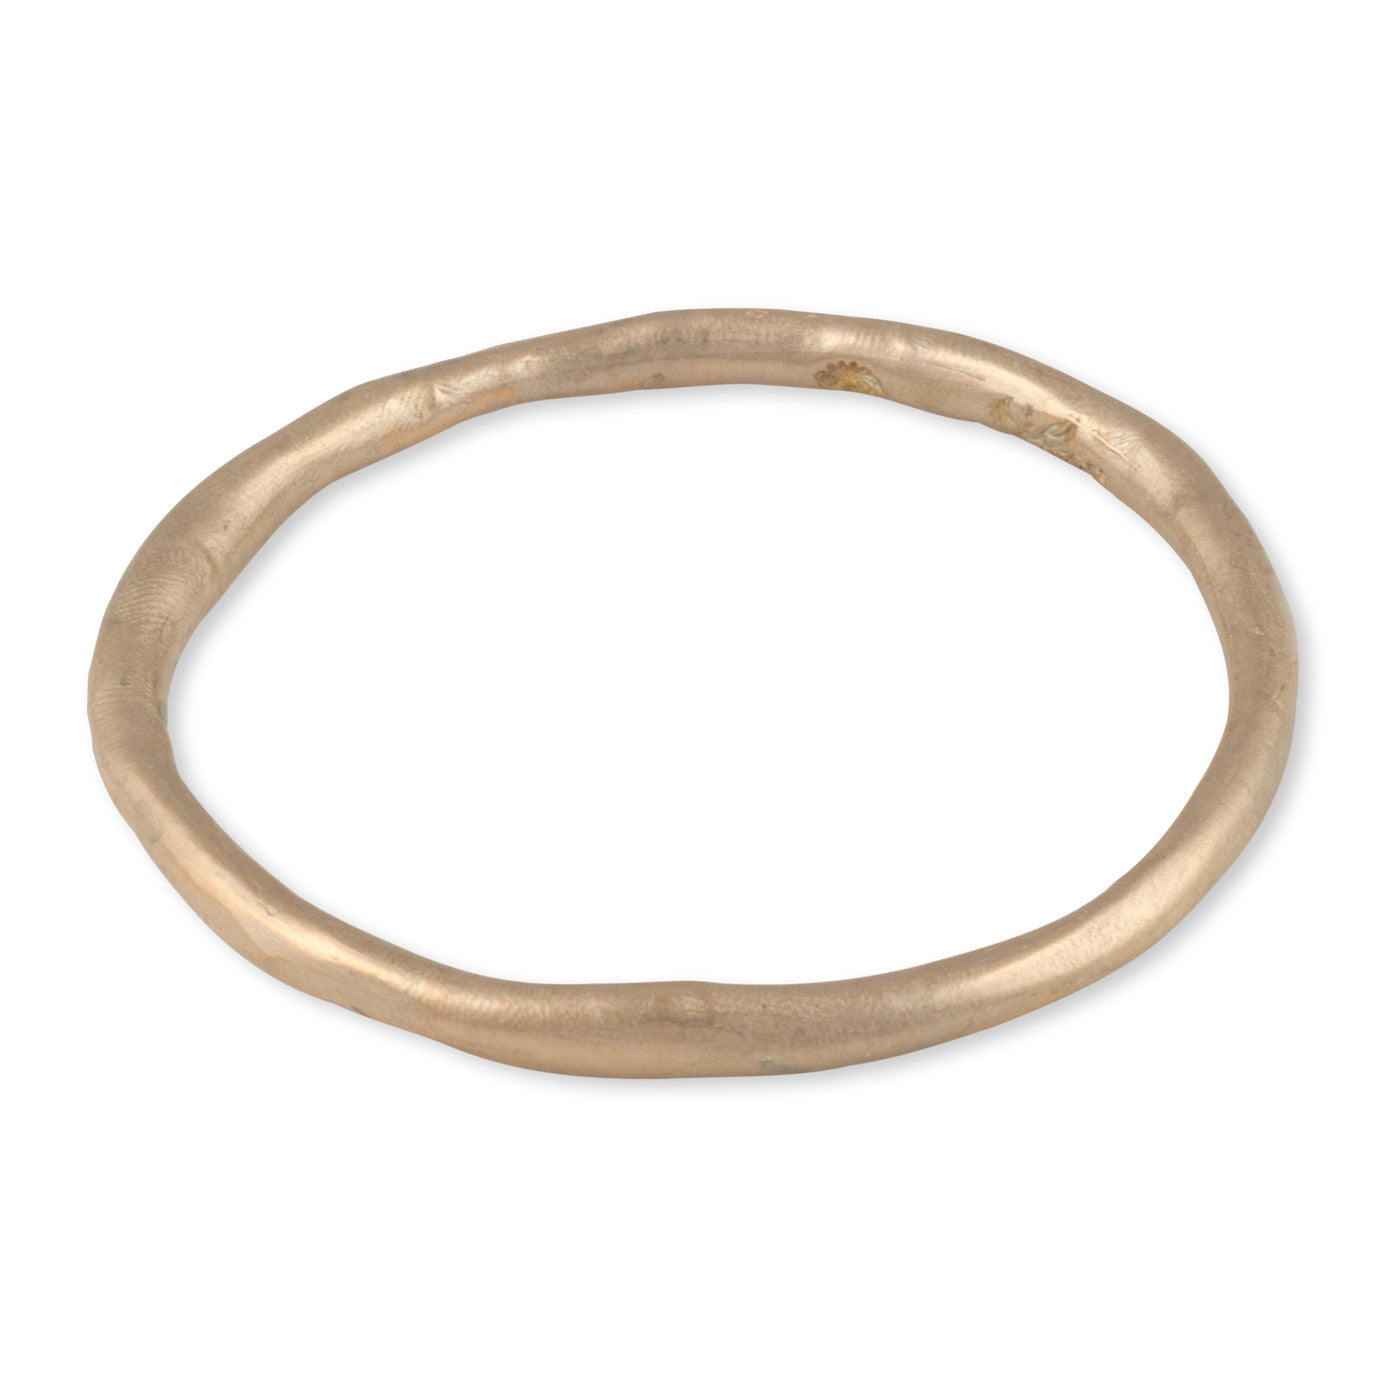 jewelry klein stainless bronze pvd pvdcoated steel bangles bangle product calvin gray coated bracelet lyst normal and gallery gold